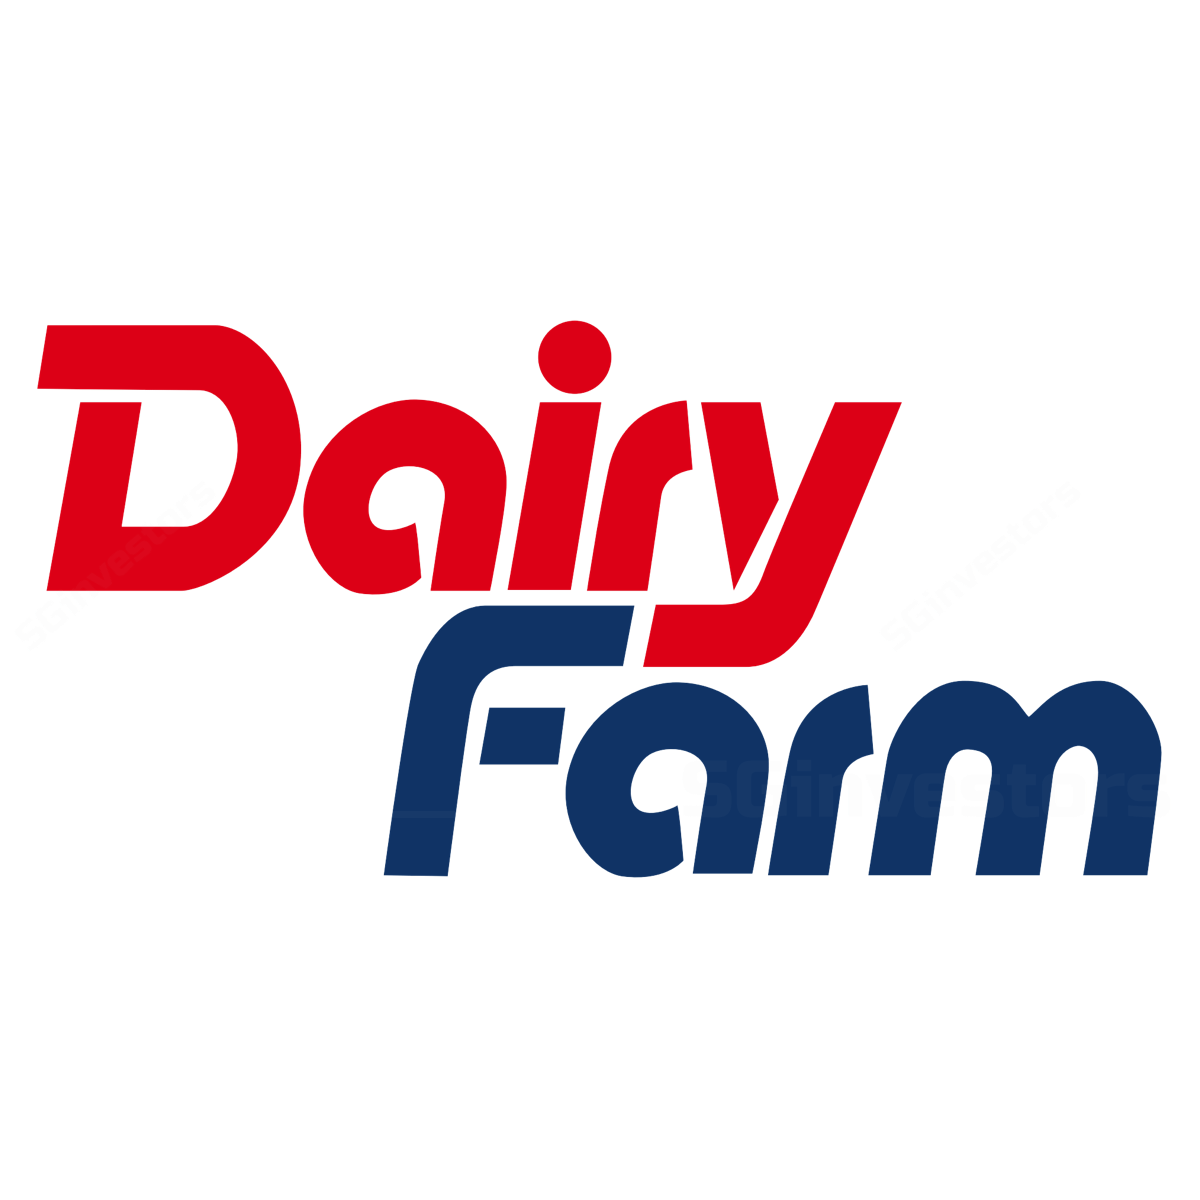 Dairy Farm Int'l - CIMB Research 2018-03-24: Gearing Up The Philippines Business